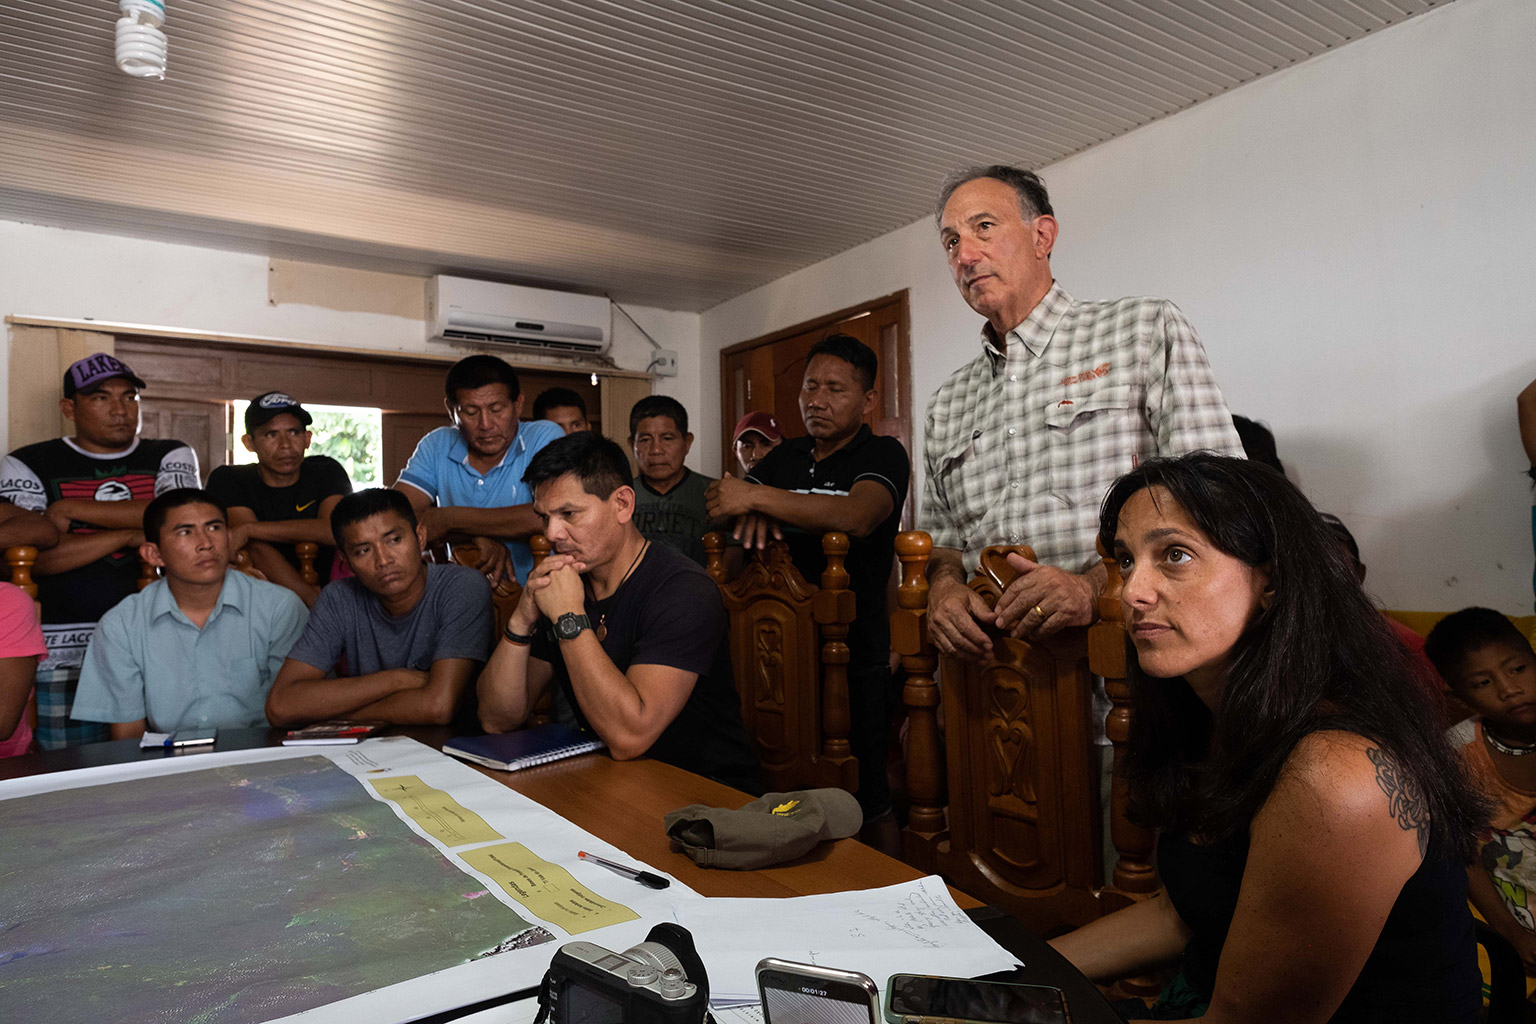 Peter Seligmann listening at a meeting of Indigenous leaders from the Javari Valley in Brazil. Photo credit: John Reid